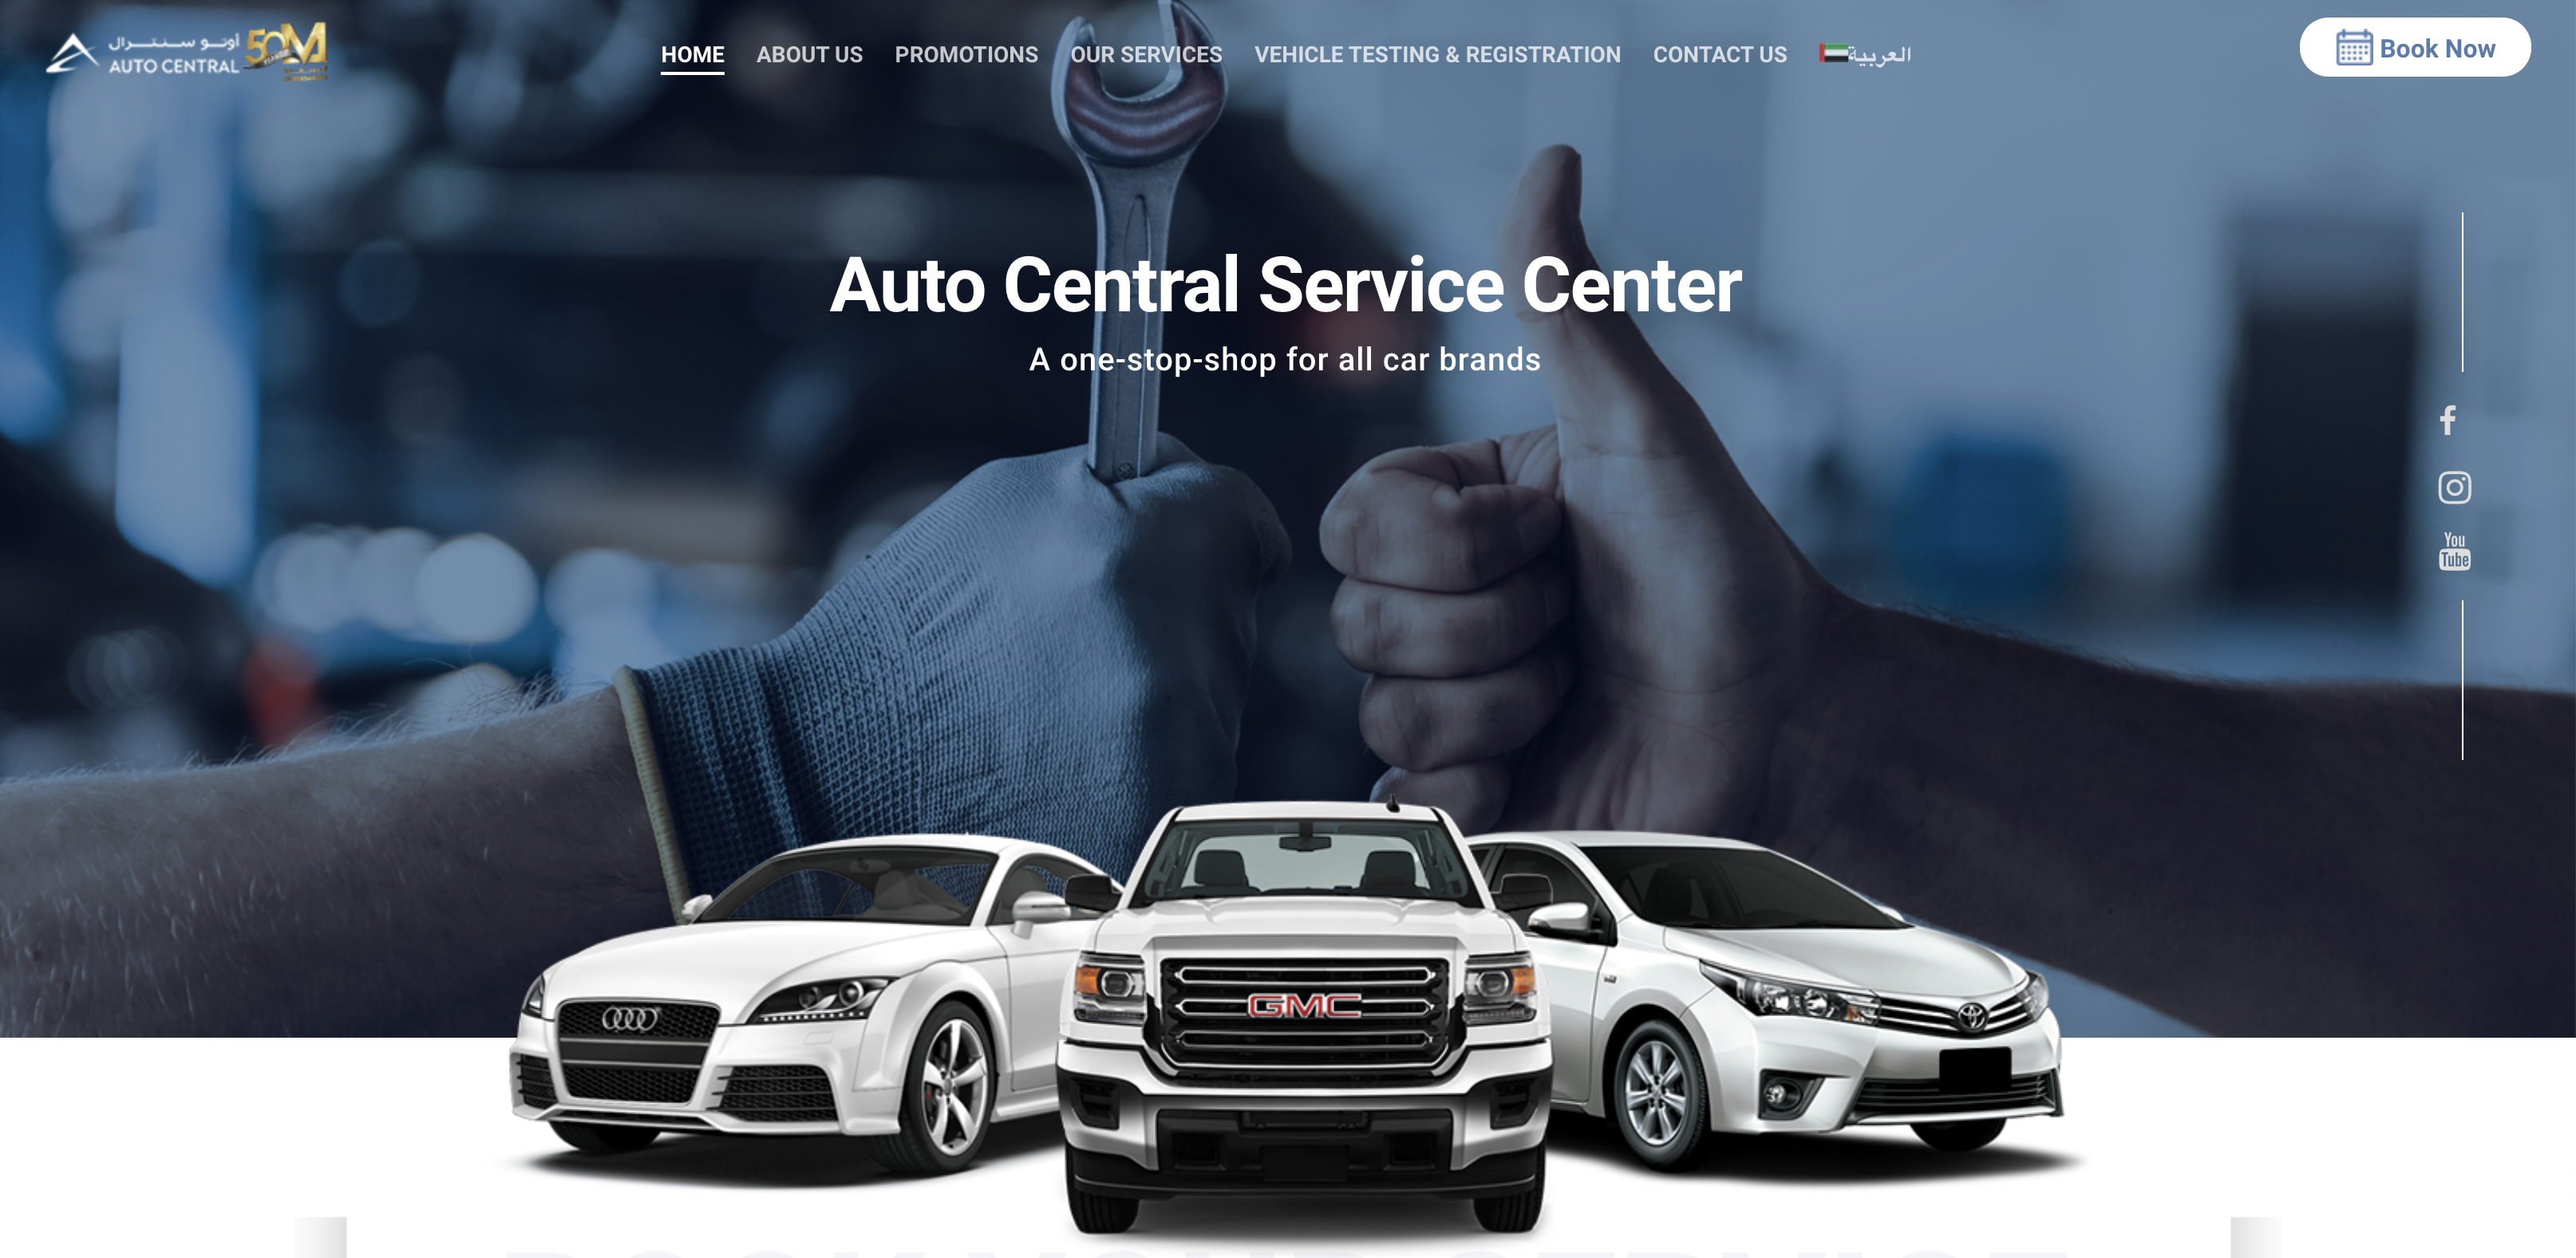 Auto Central Launches Its Brand-new Website